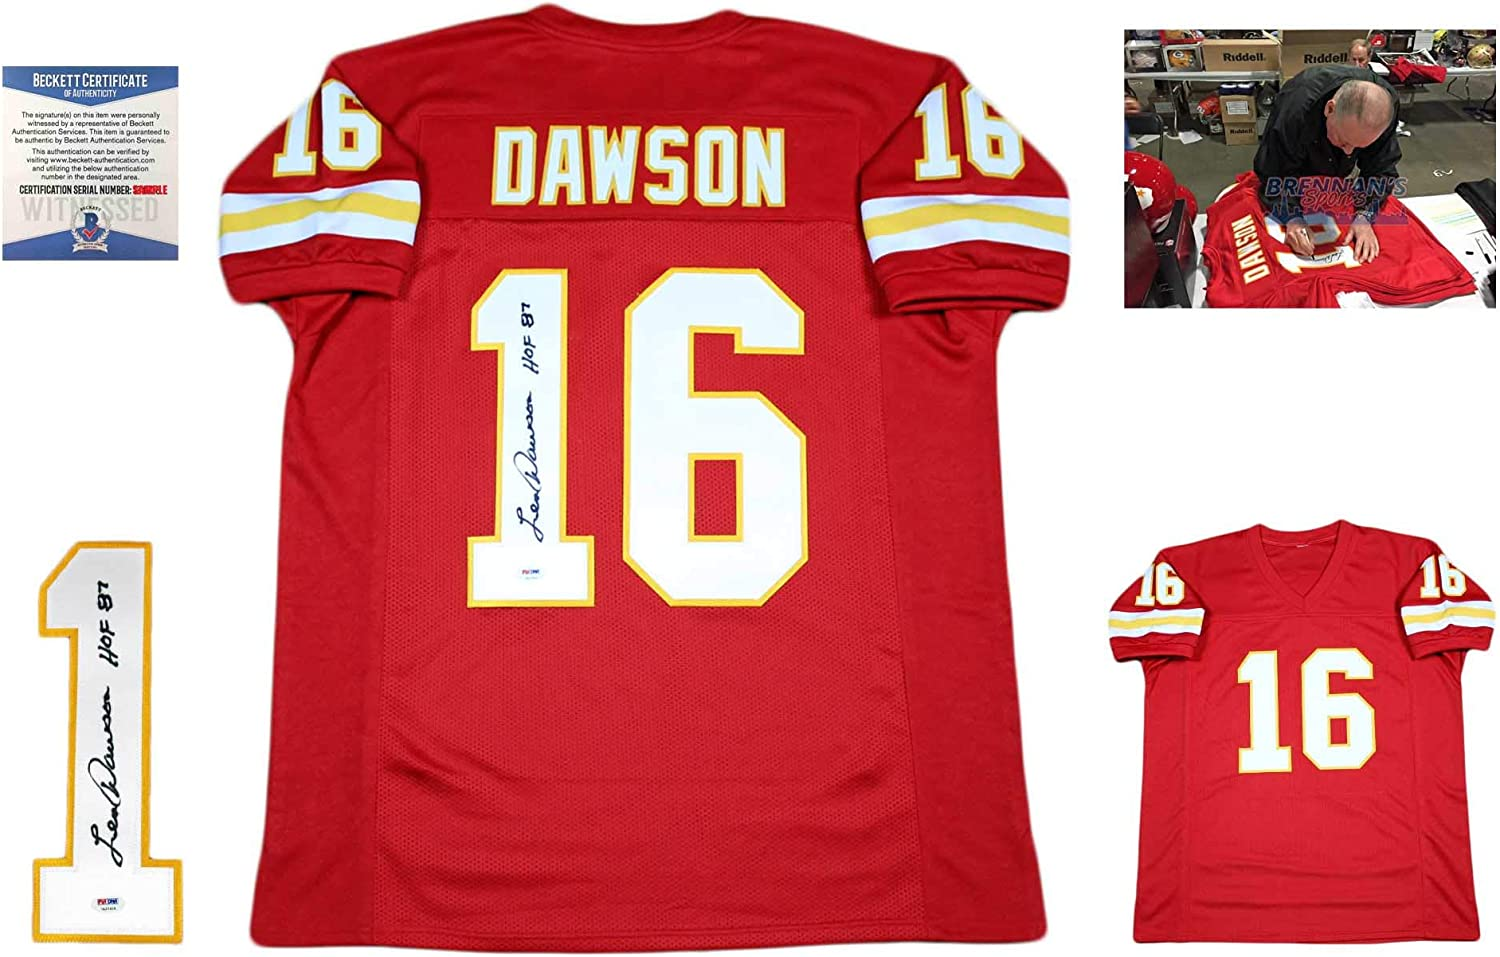 Len Dawson Autographed SIGNED Jersey - Beckett Authentic - Red